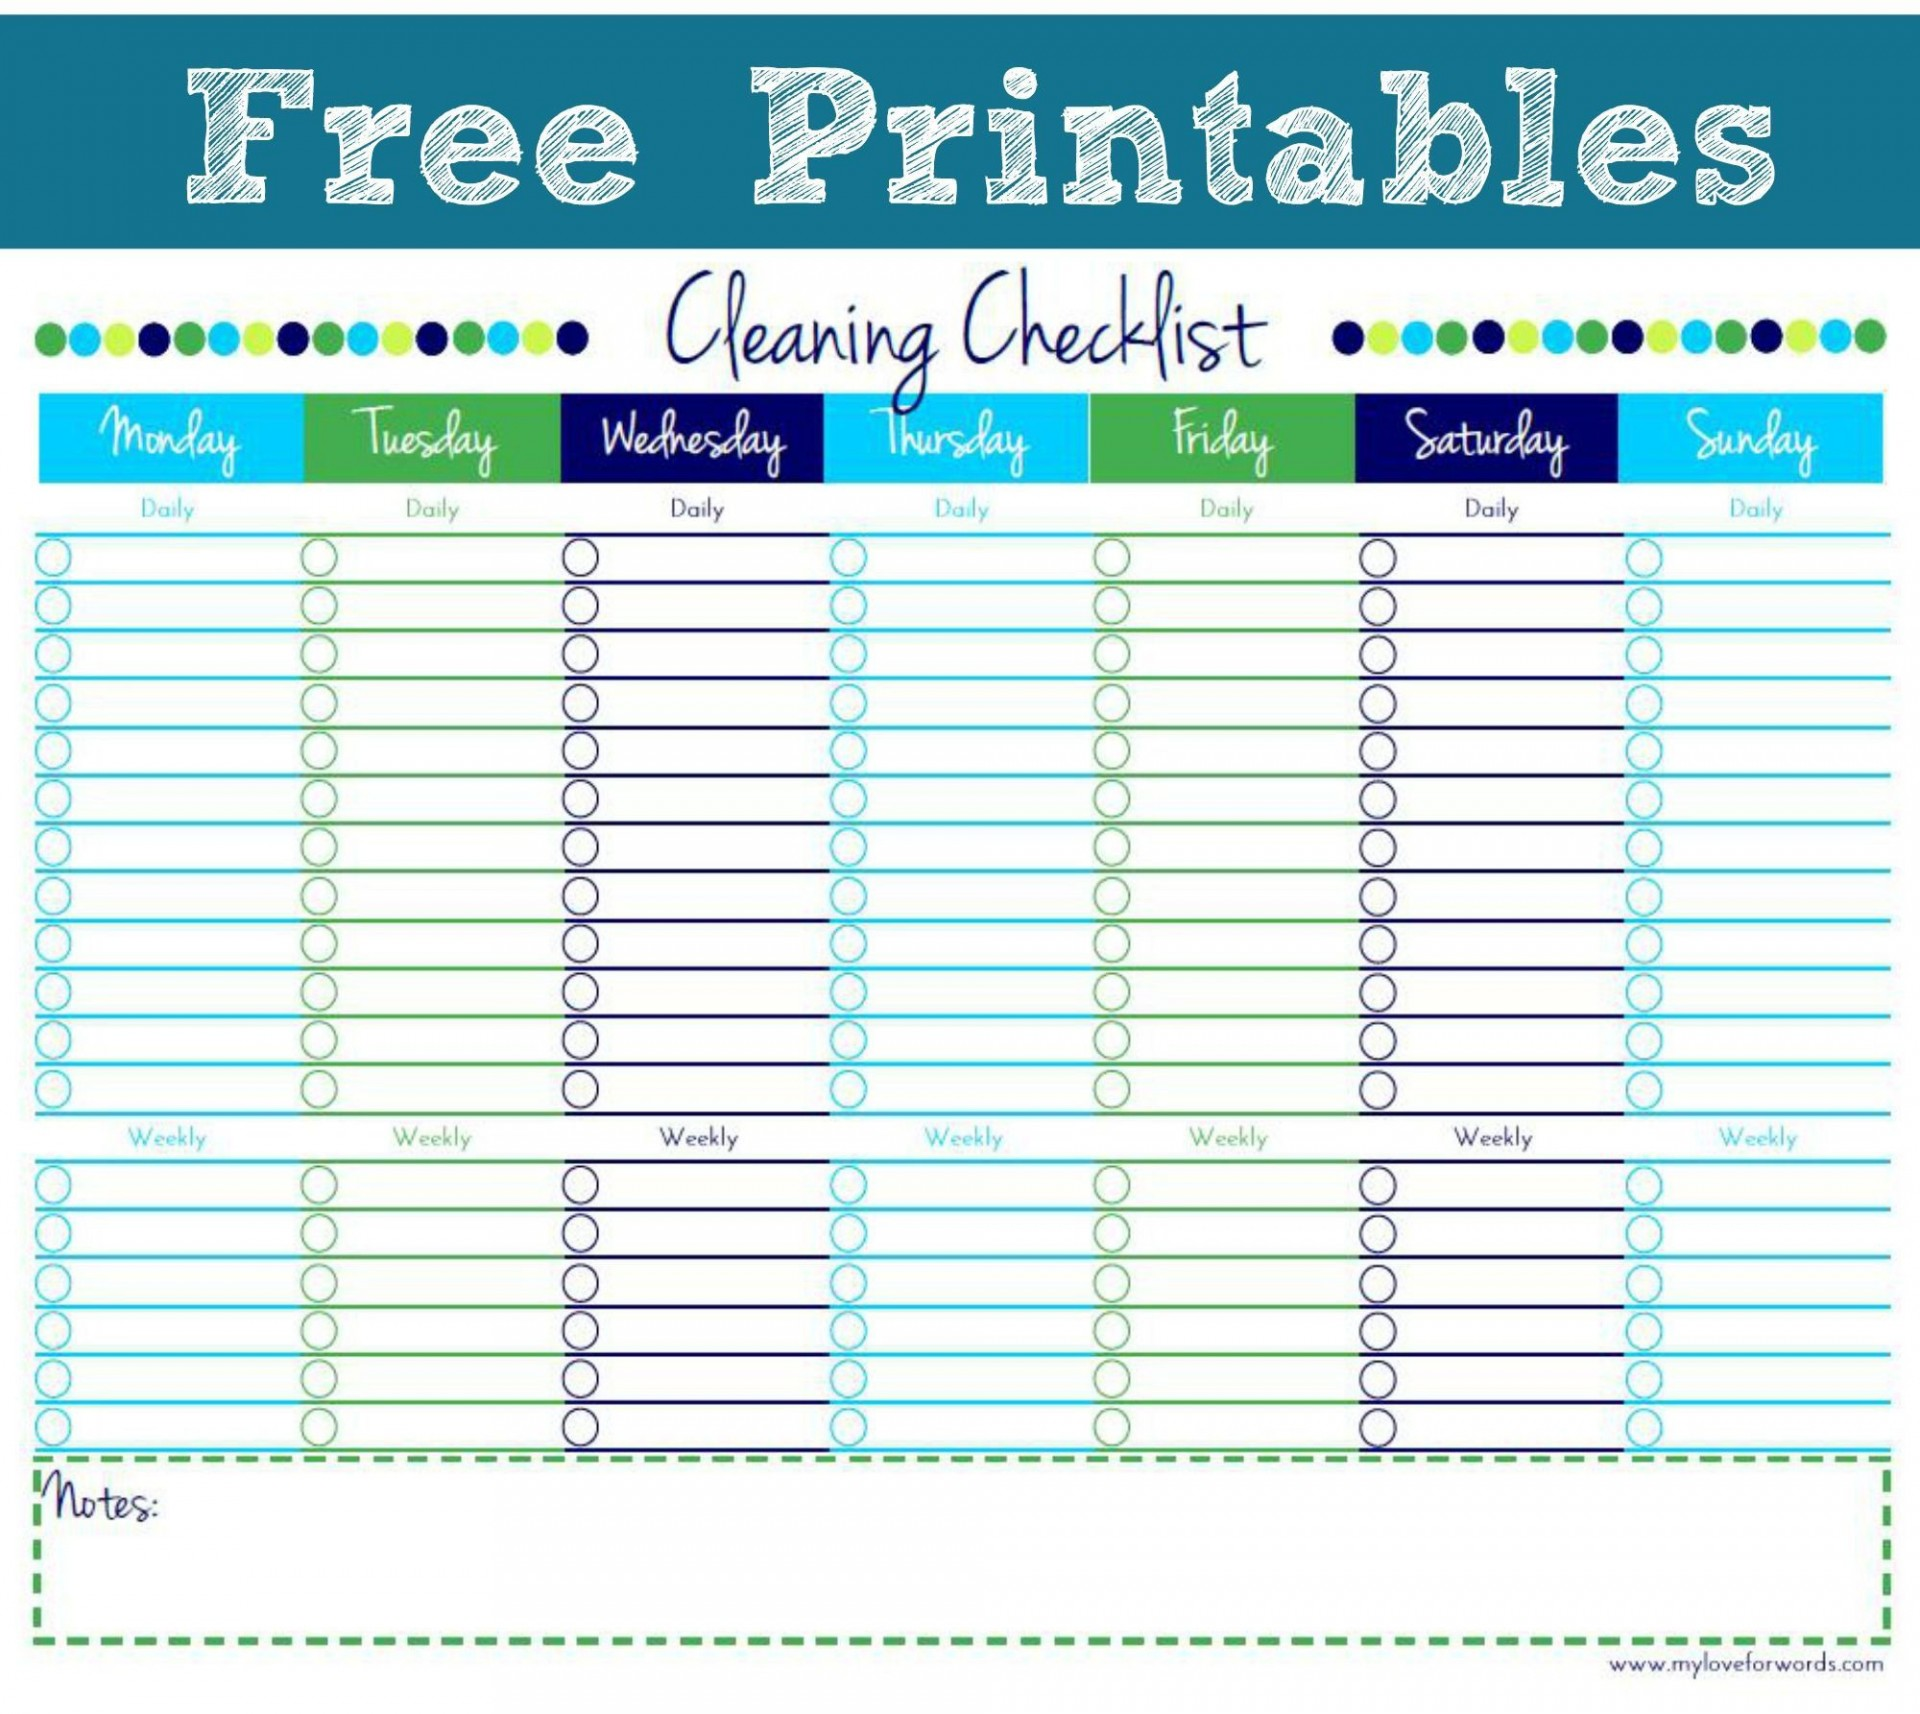 001 Remarkable Free Printable Weekly Cleaning Schedule Template Photo  Office1920